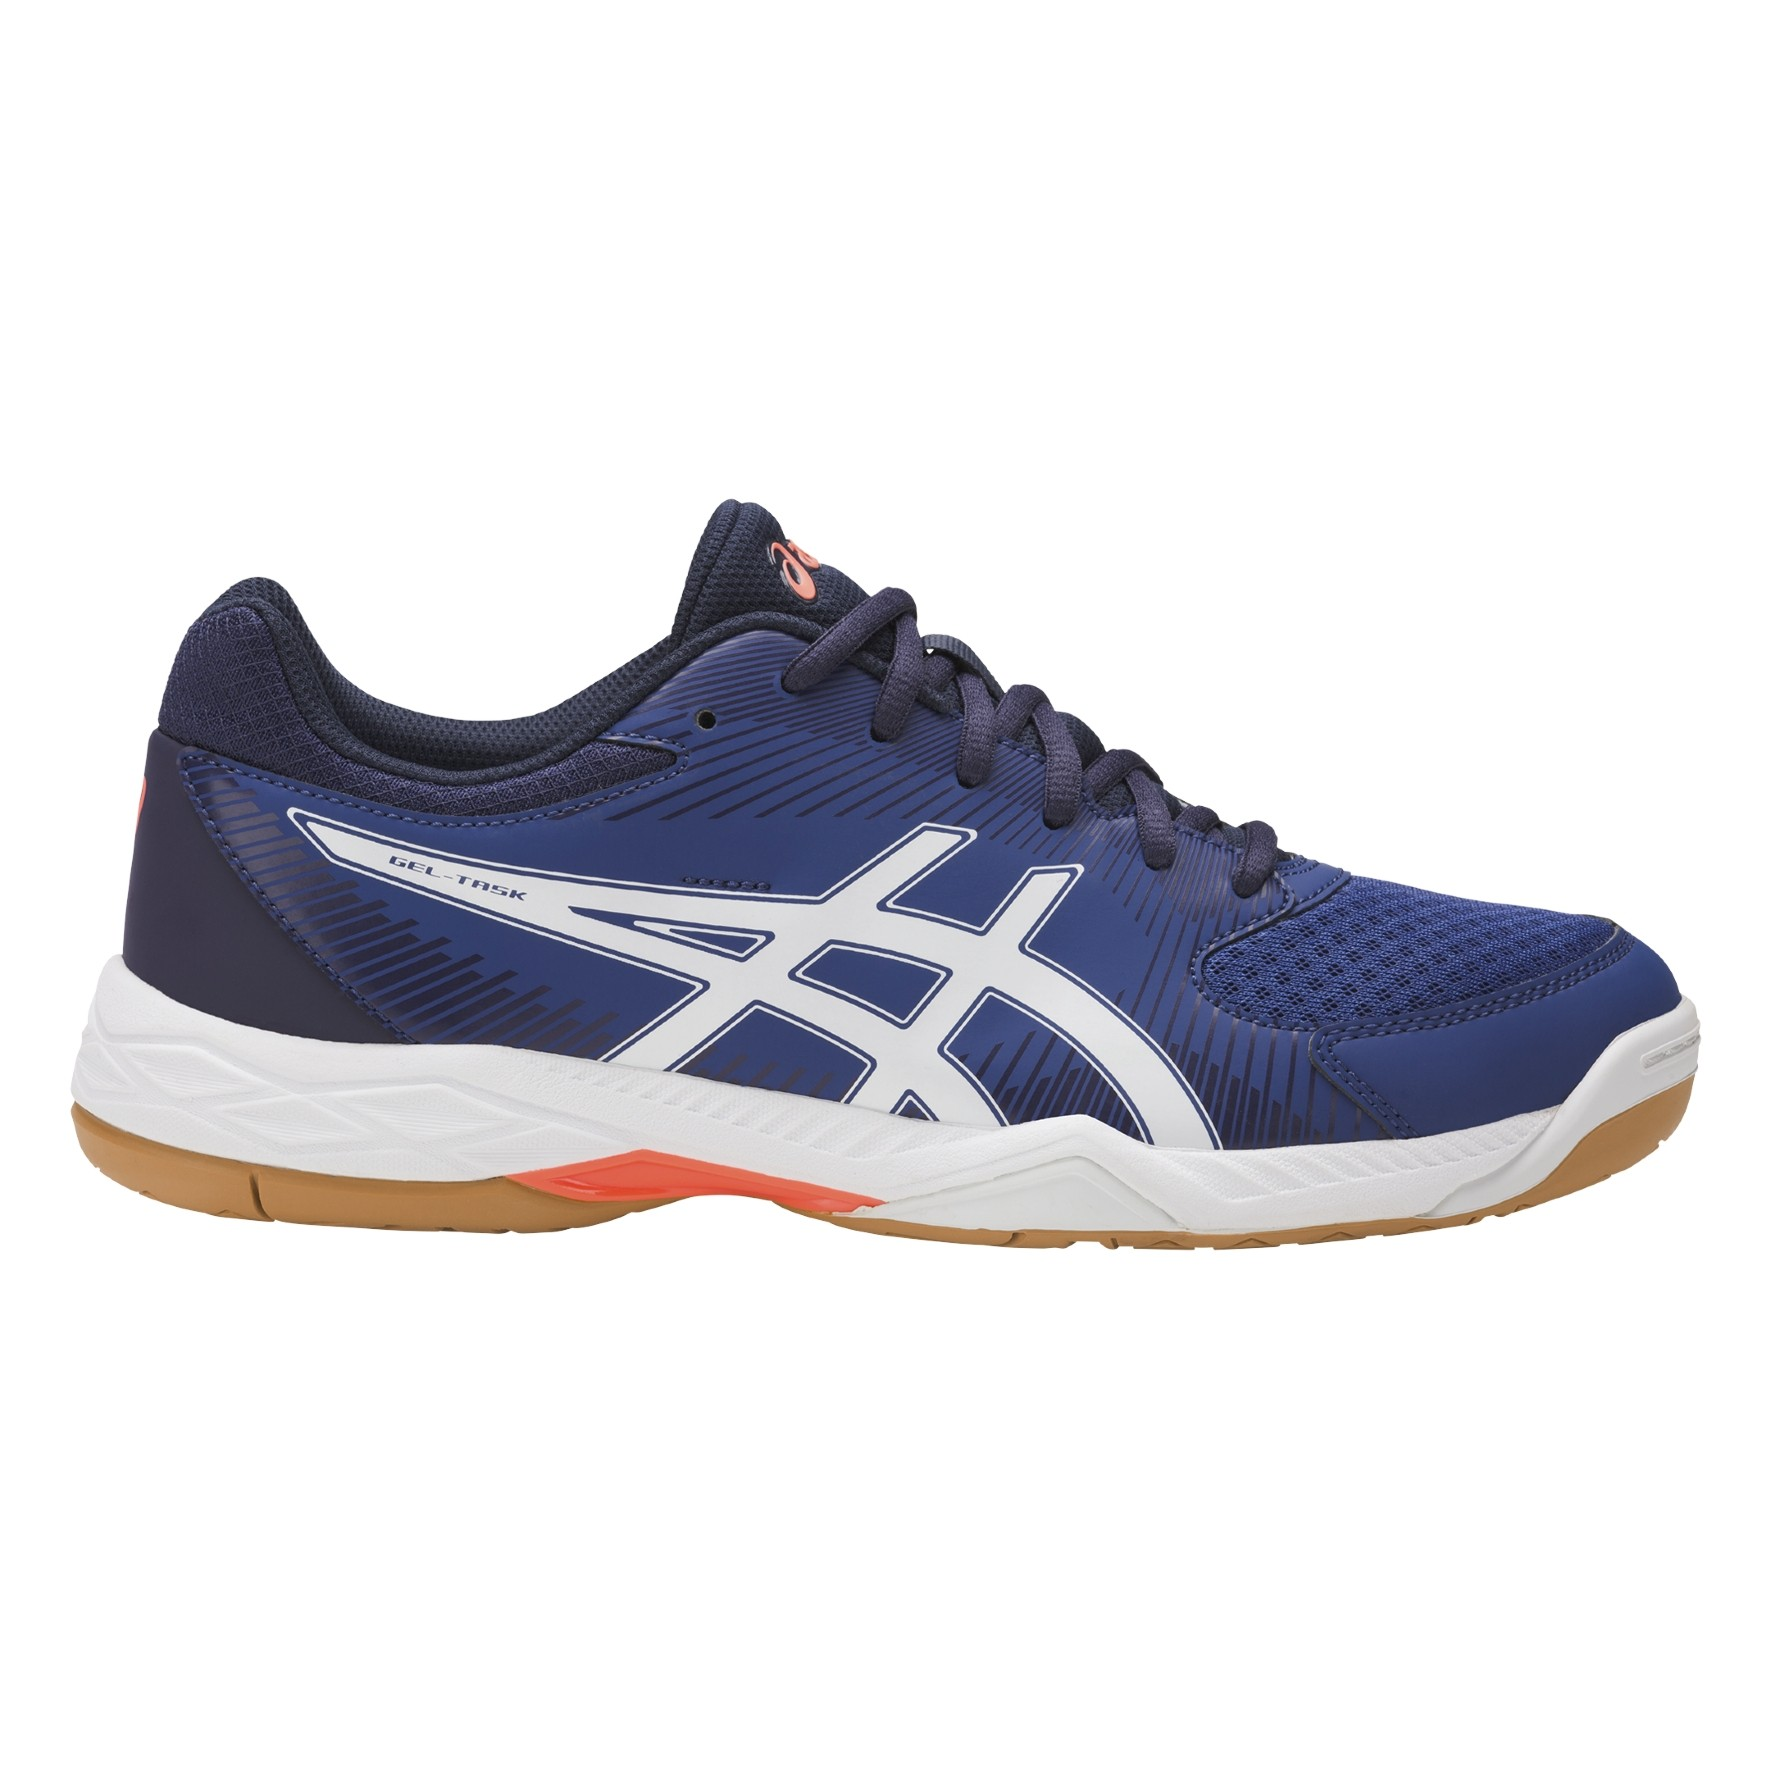 7b639683fa Volleyball ASICS GEL-TASK B704Y.4901 - Volleyball - Shoes